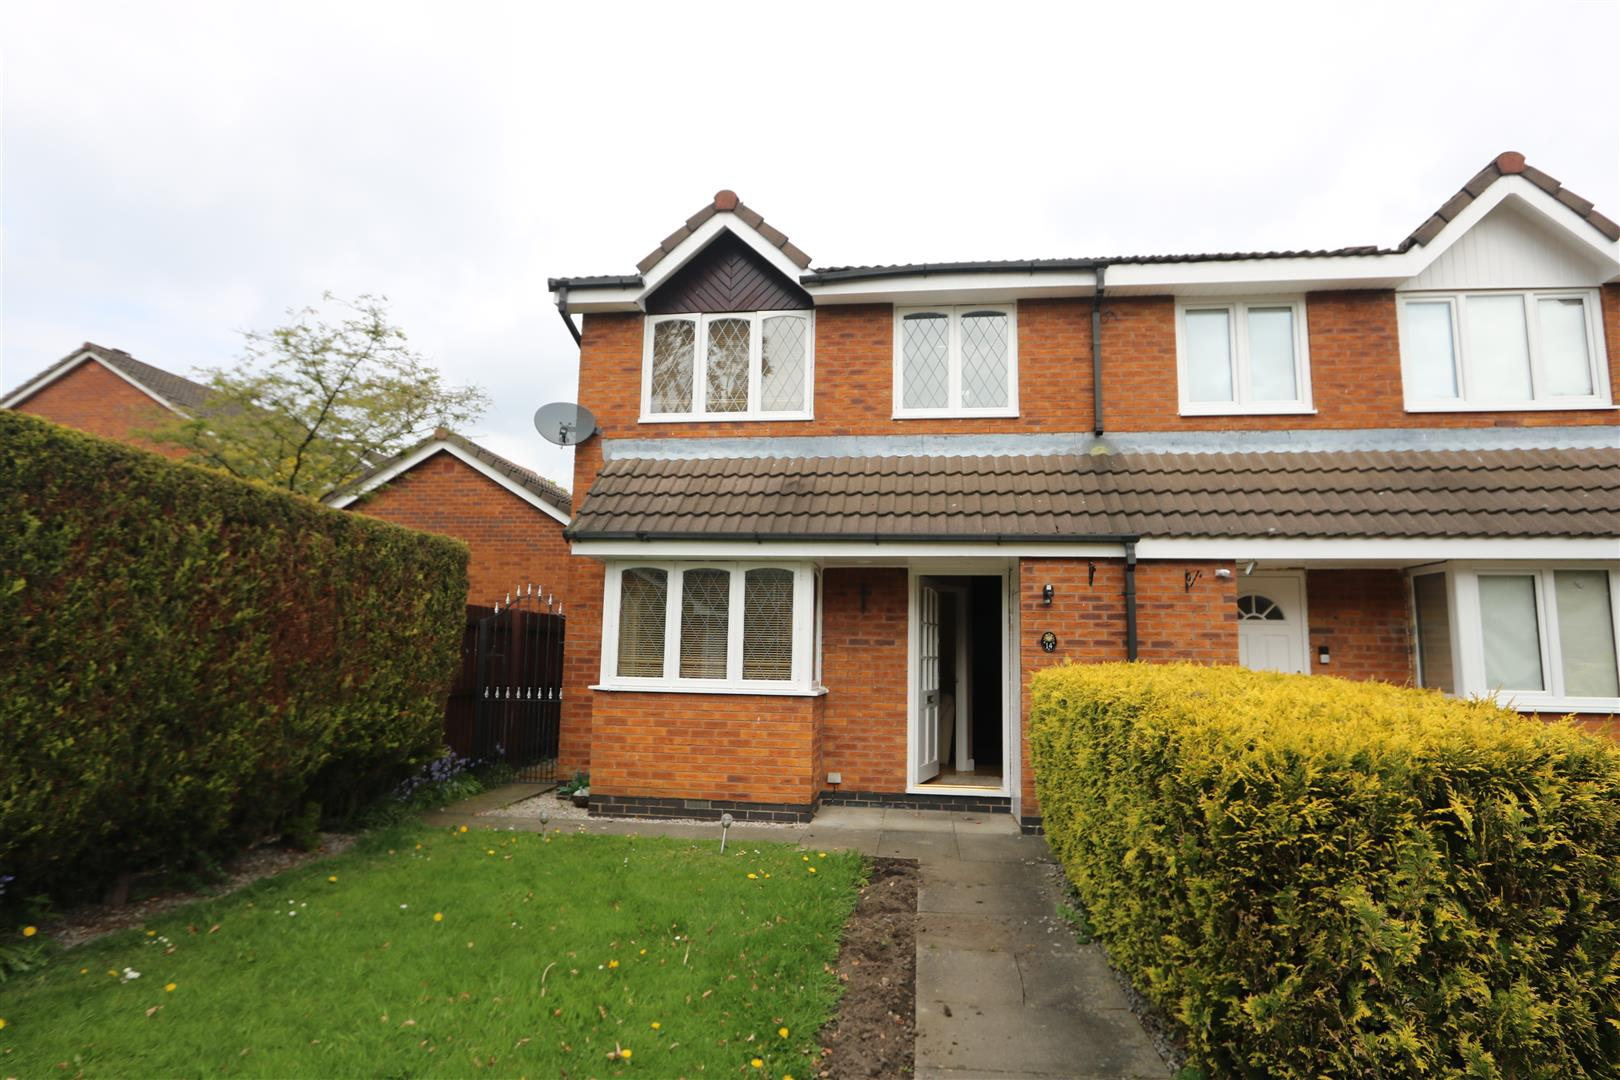 14 Willowbank, Radcliffe